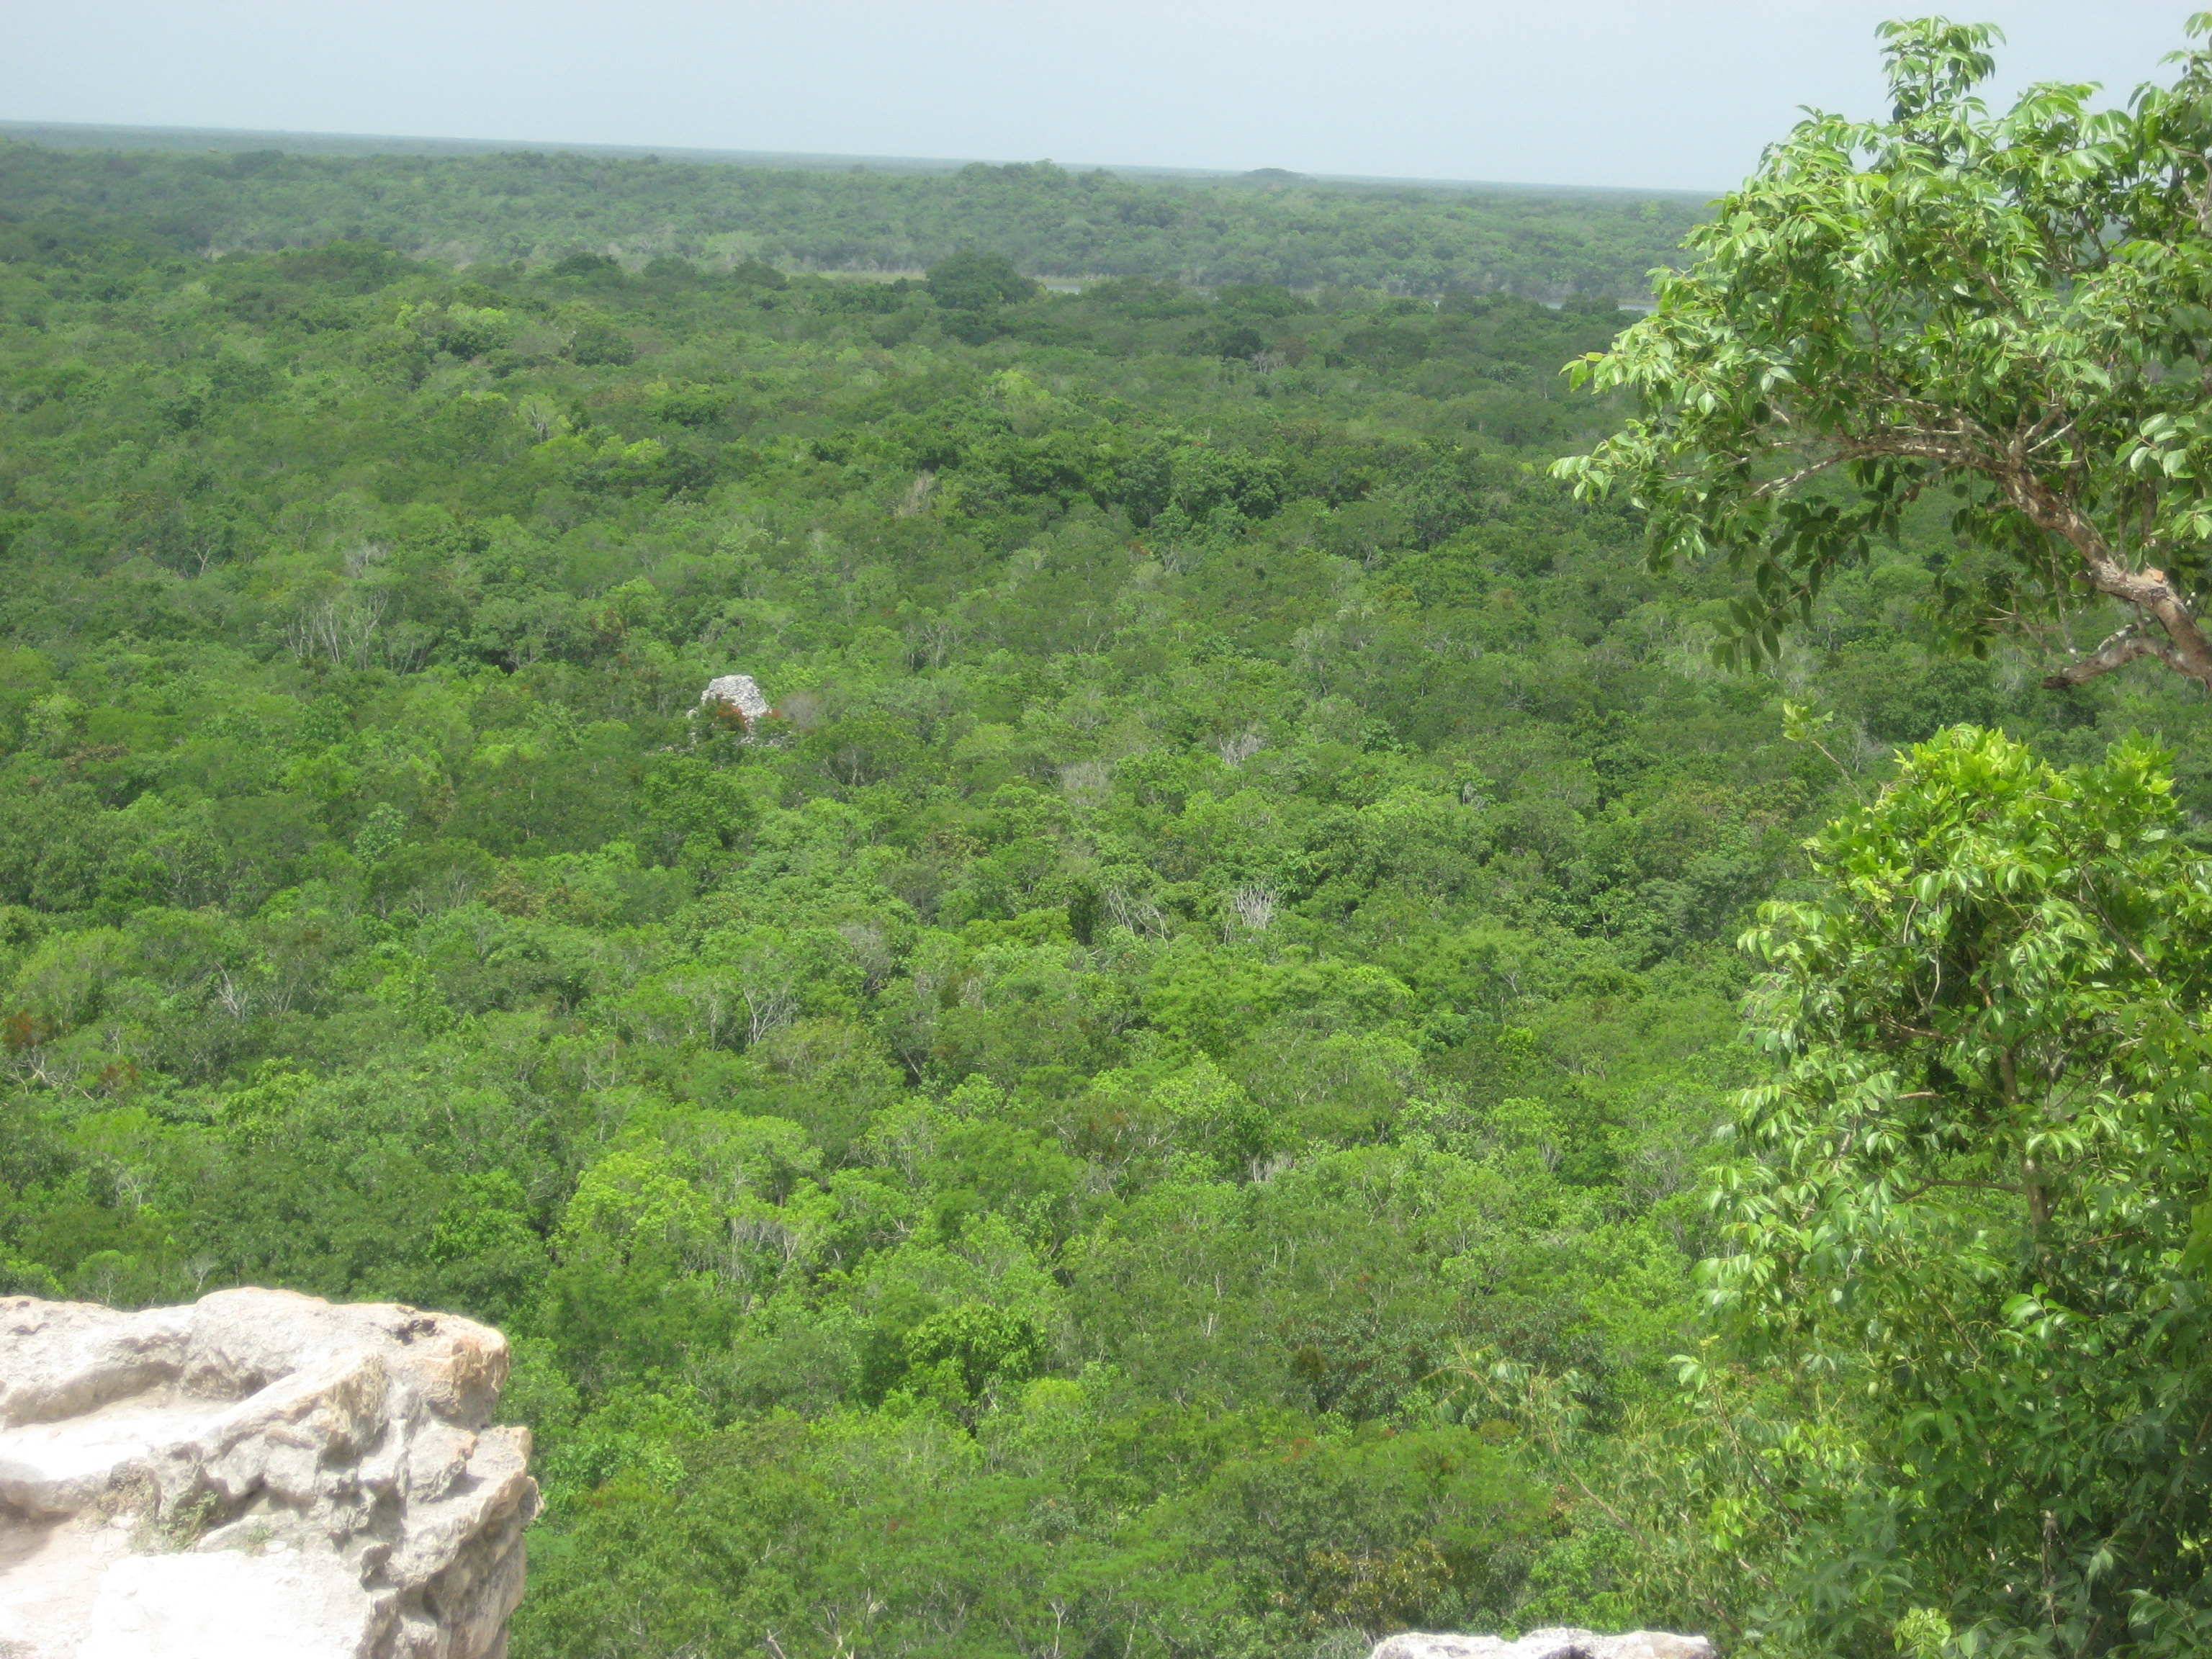 View from top of the pyramid in Coba